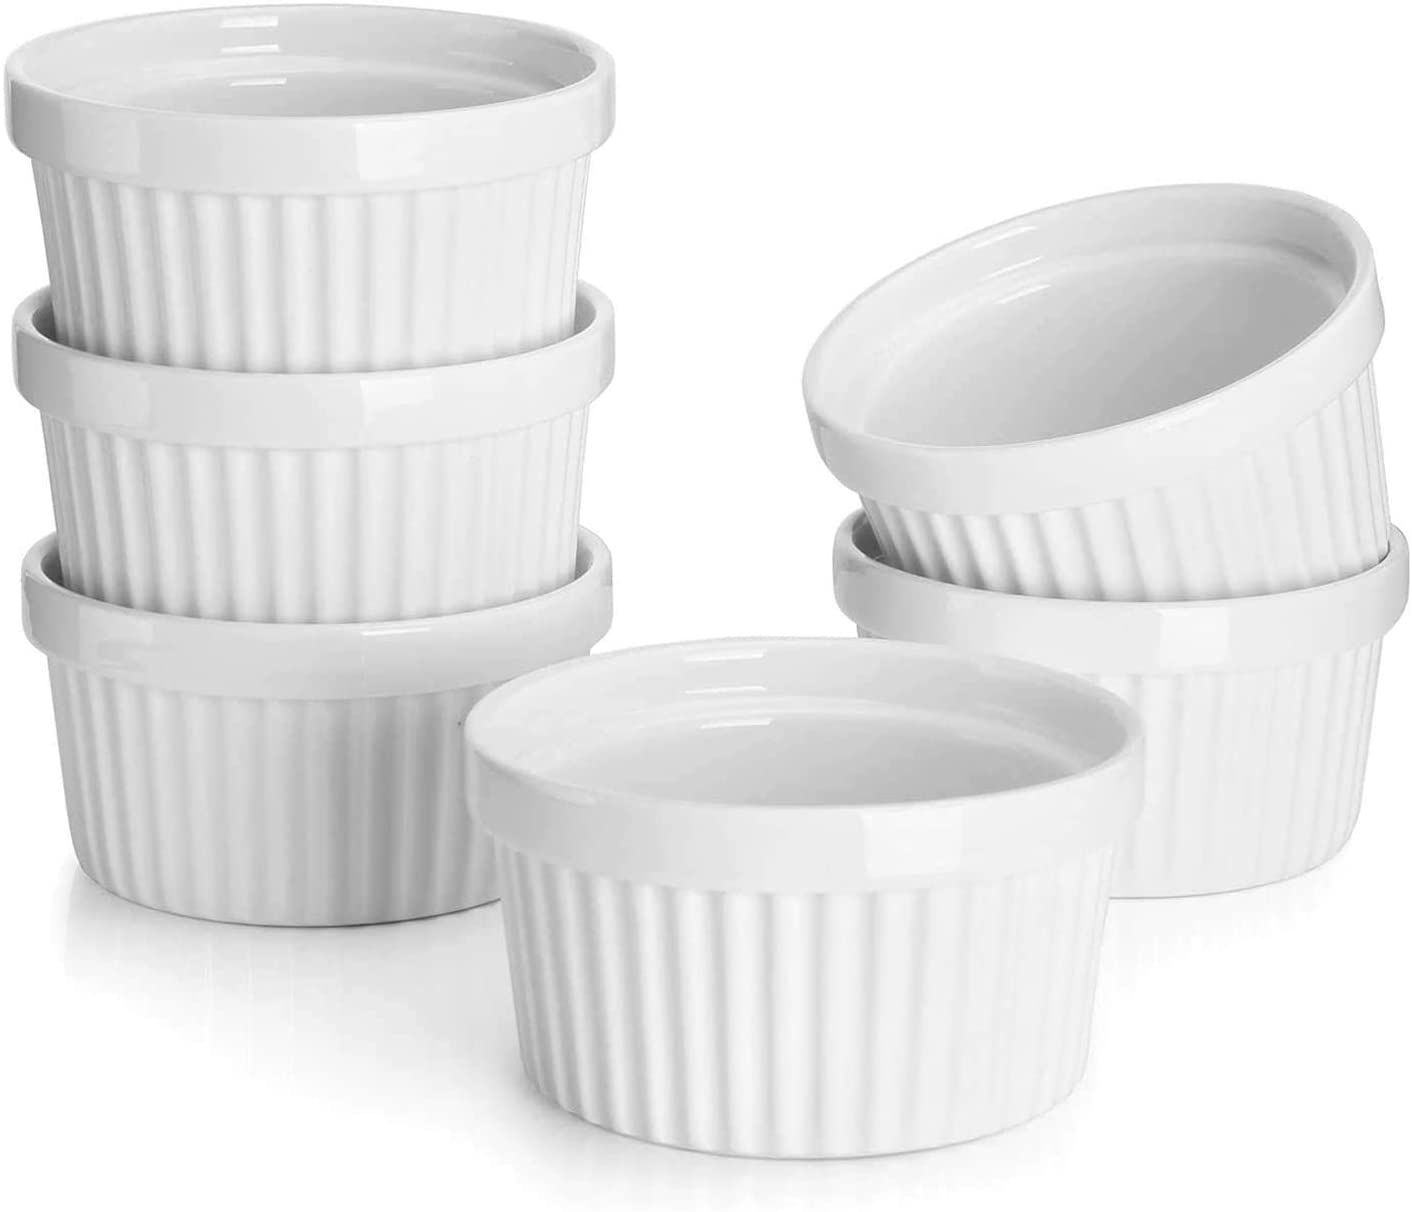 Sweese Porcelain Souffle Dishes